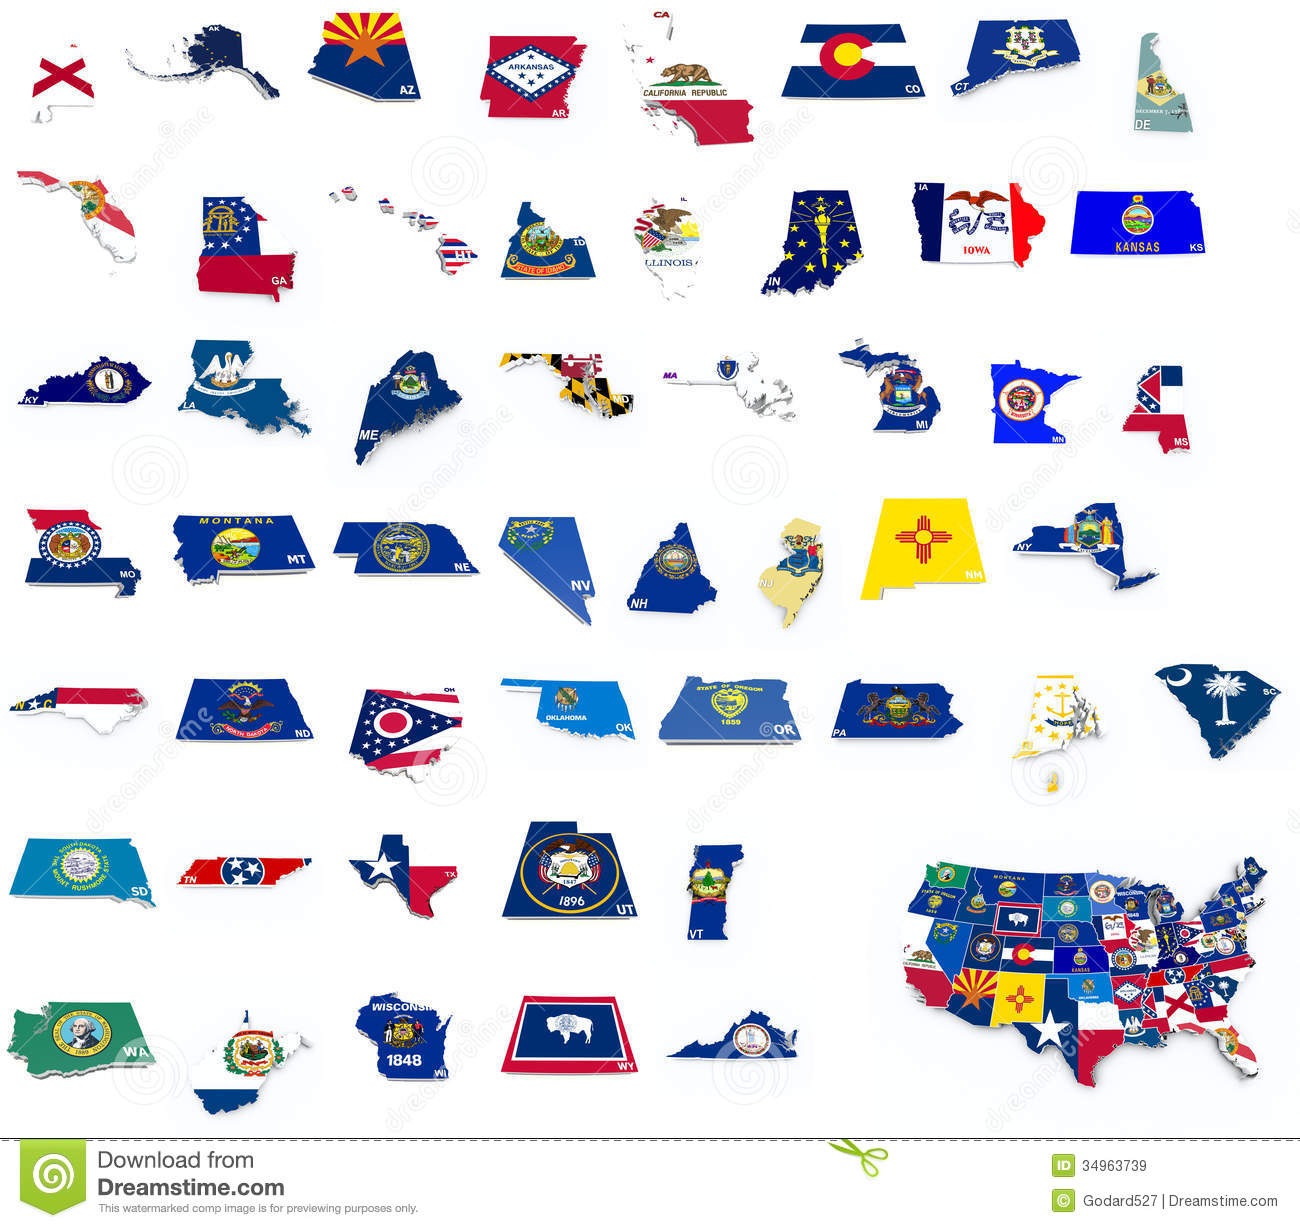 US State Flags Flags Of States Usa State Flags On D Map Stock - Map the us states